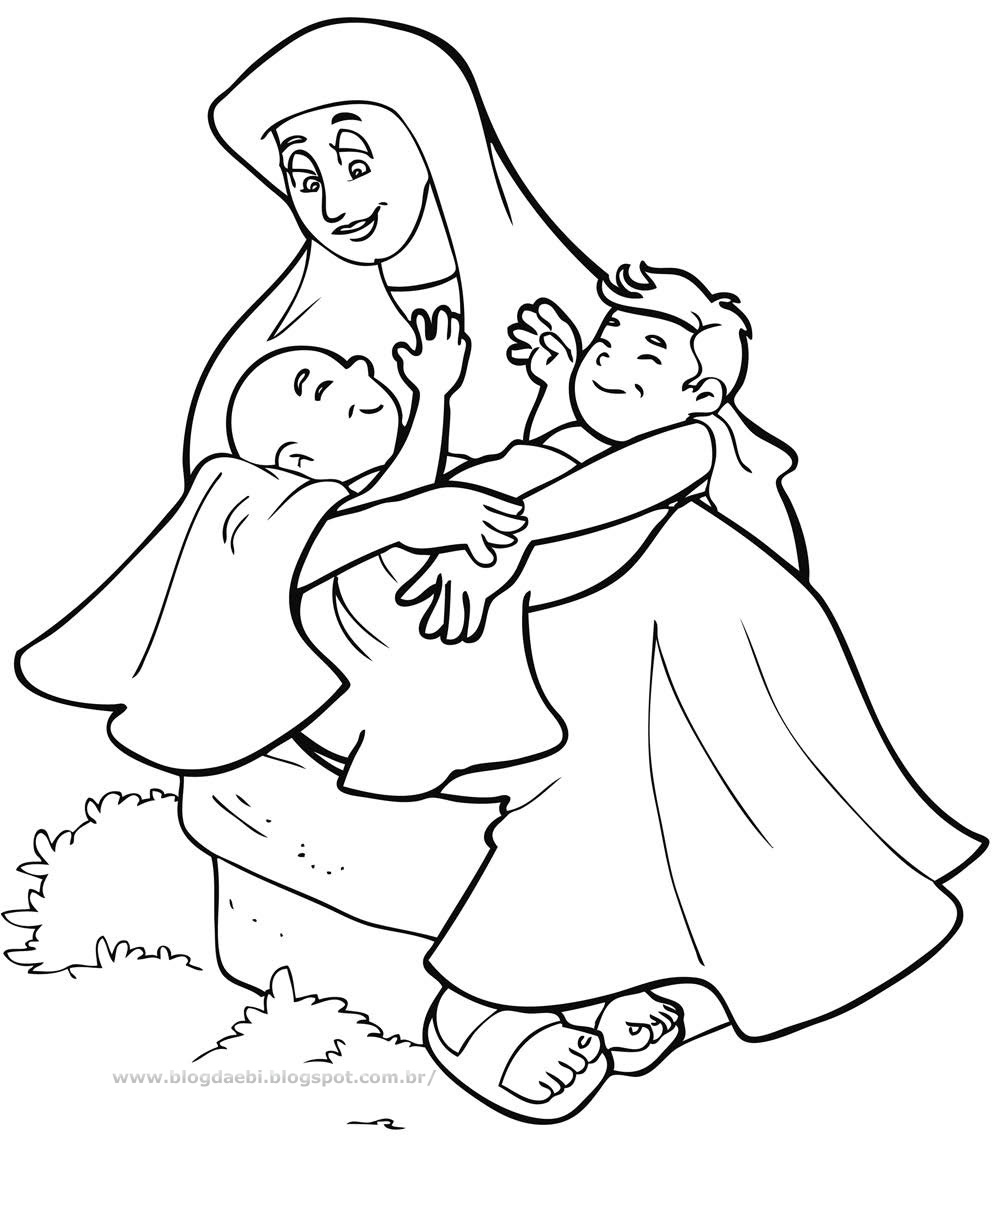 Free Coloring Pages Of Esau Forgives Jacob